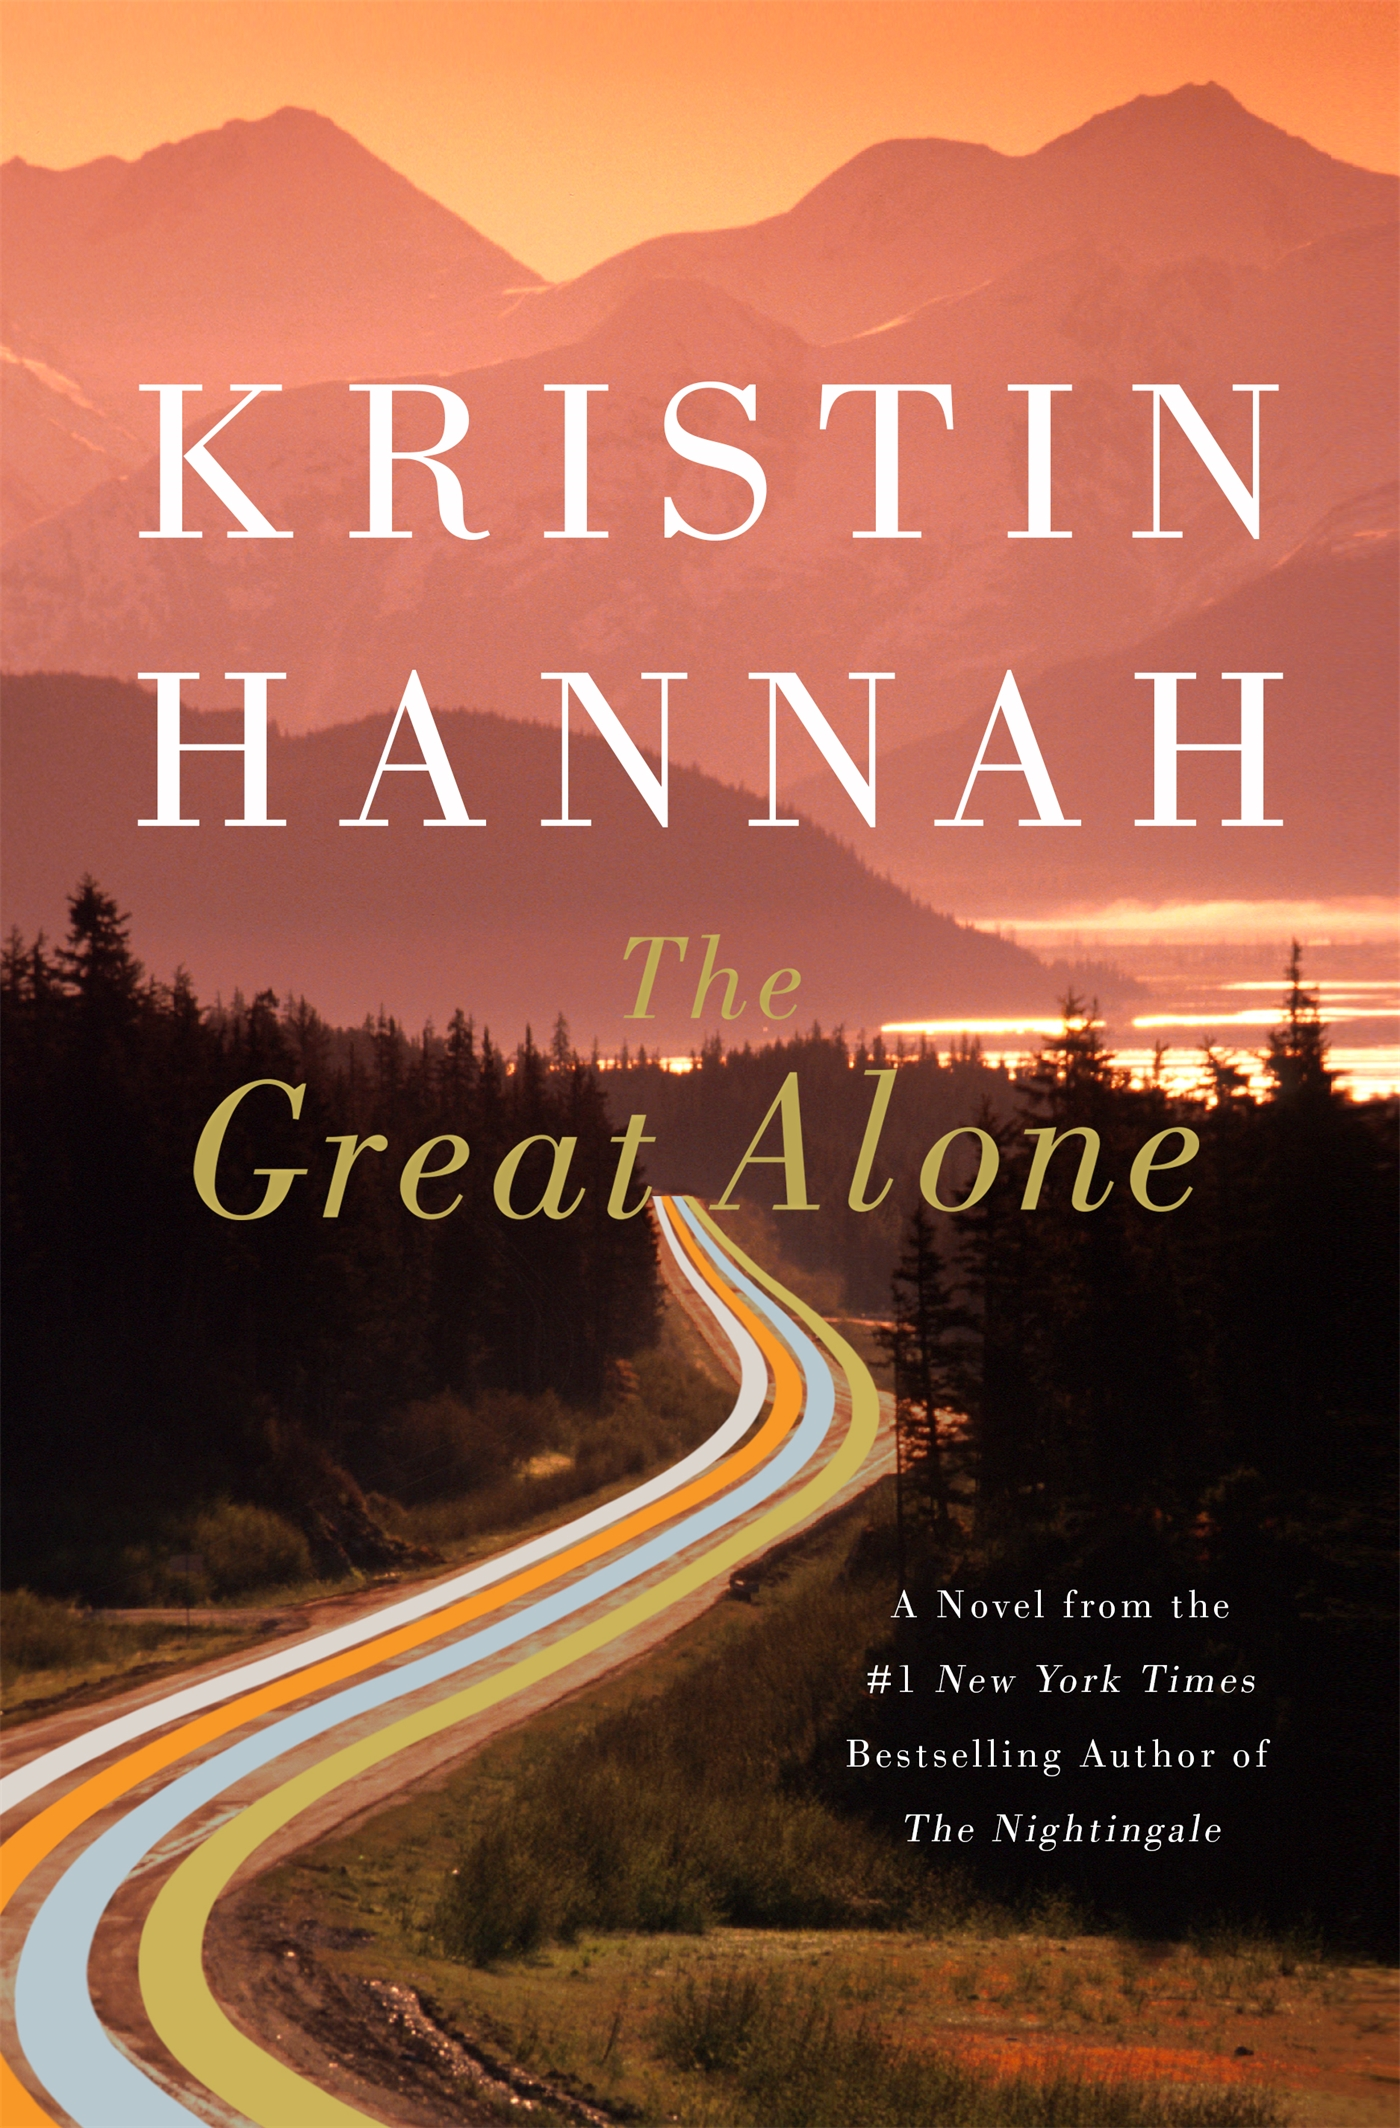 Bestsellers Libros Kristin Hannah New York Times Bestselling Author New York